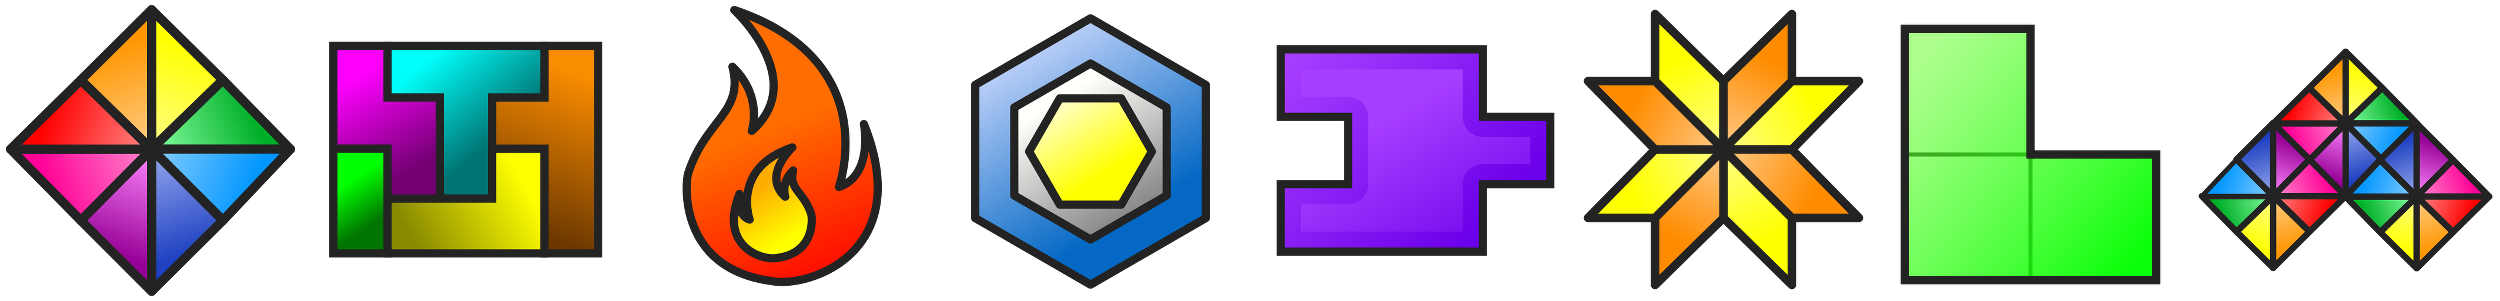 icon_banner.png